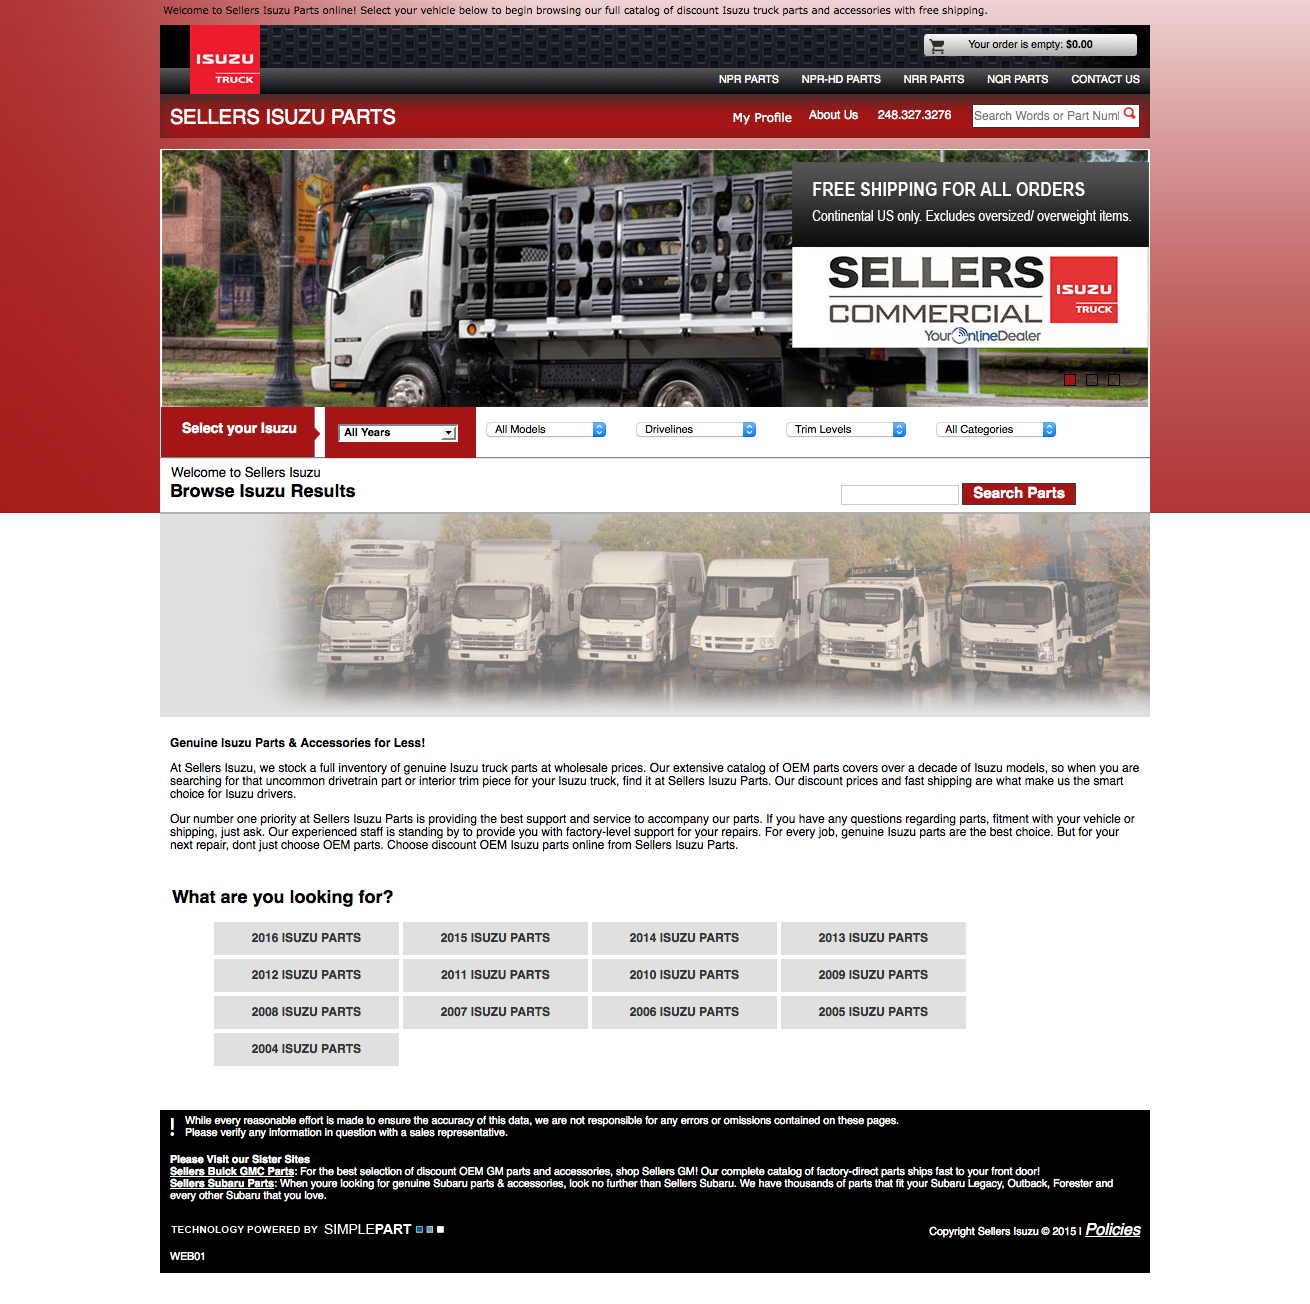 Sellers Isuzu